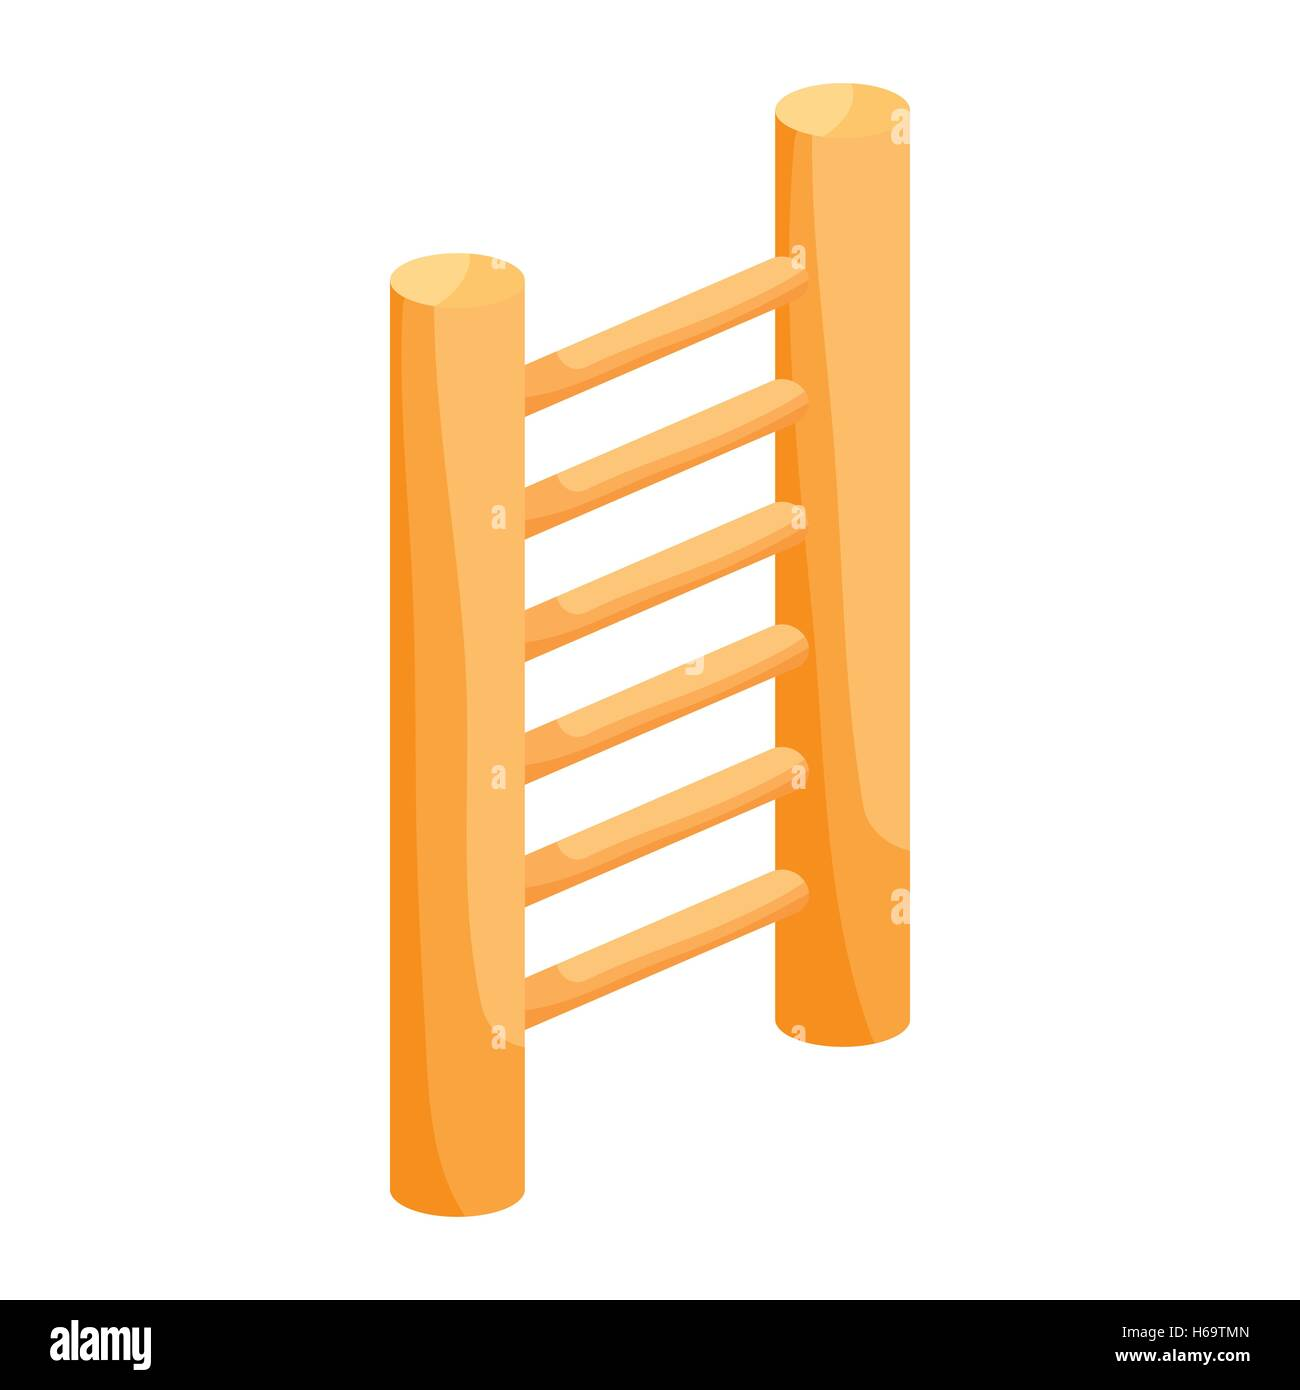 Wooden vertical ladder icon, cartoon style - Stock Image